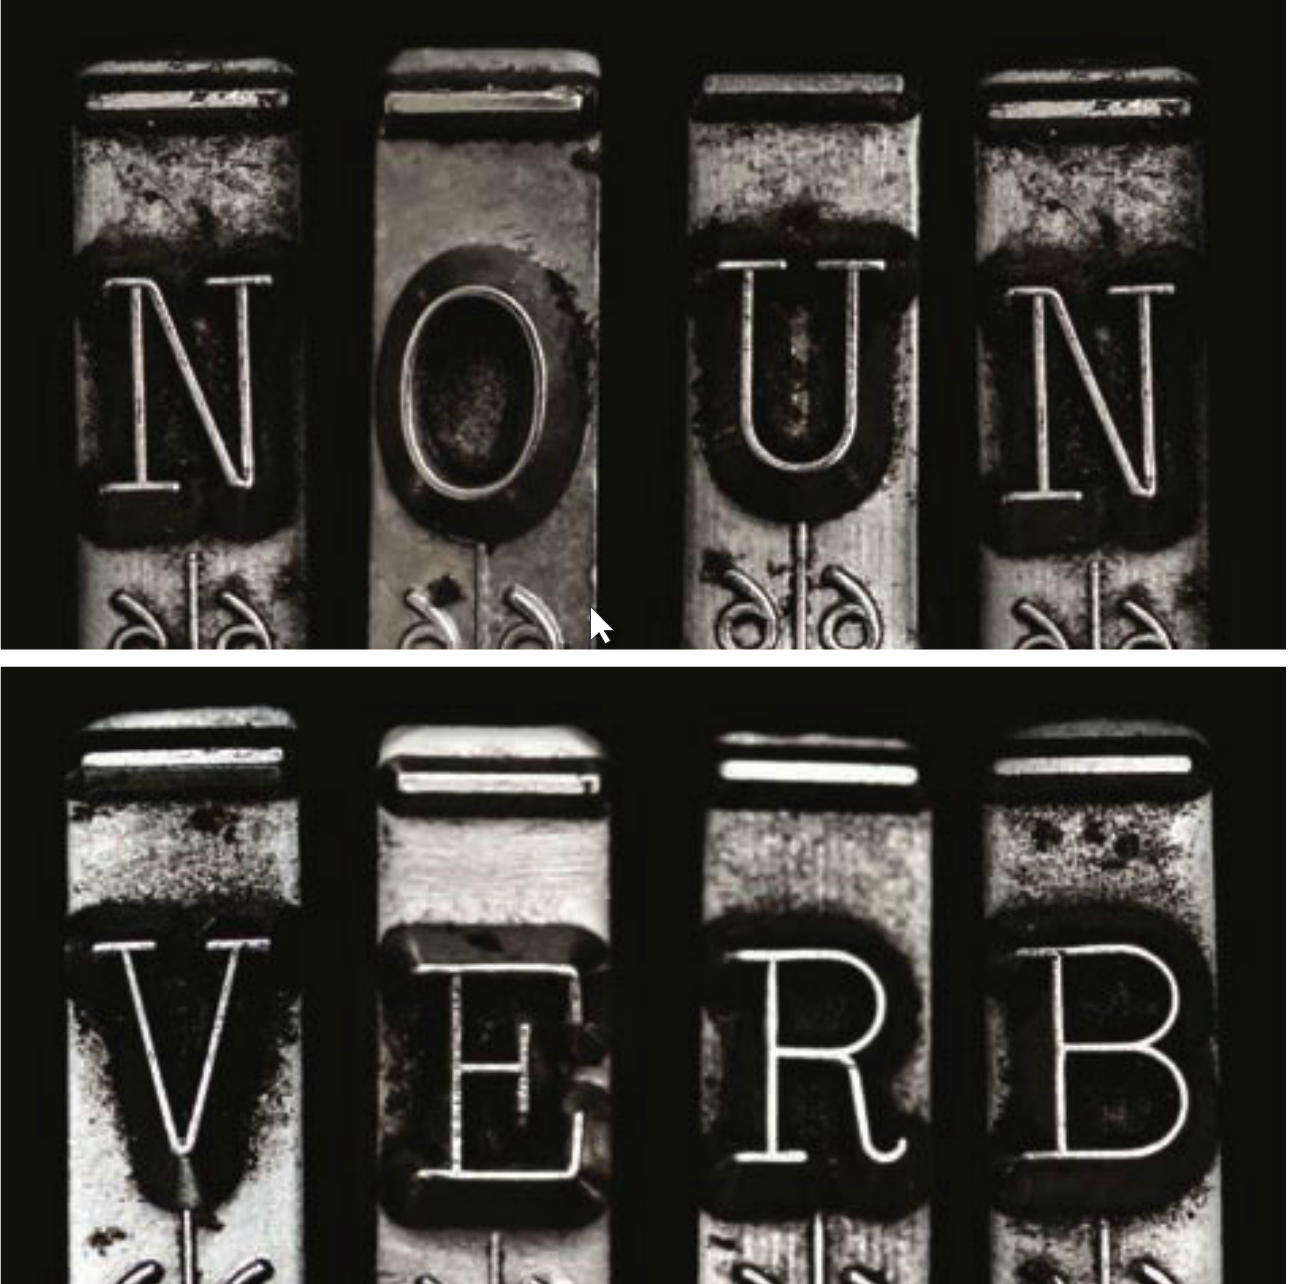 noun and verb spelled out with typewriter keys